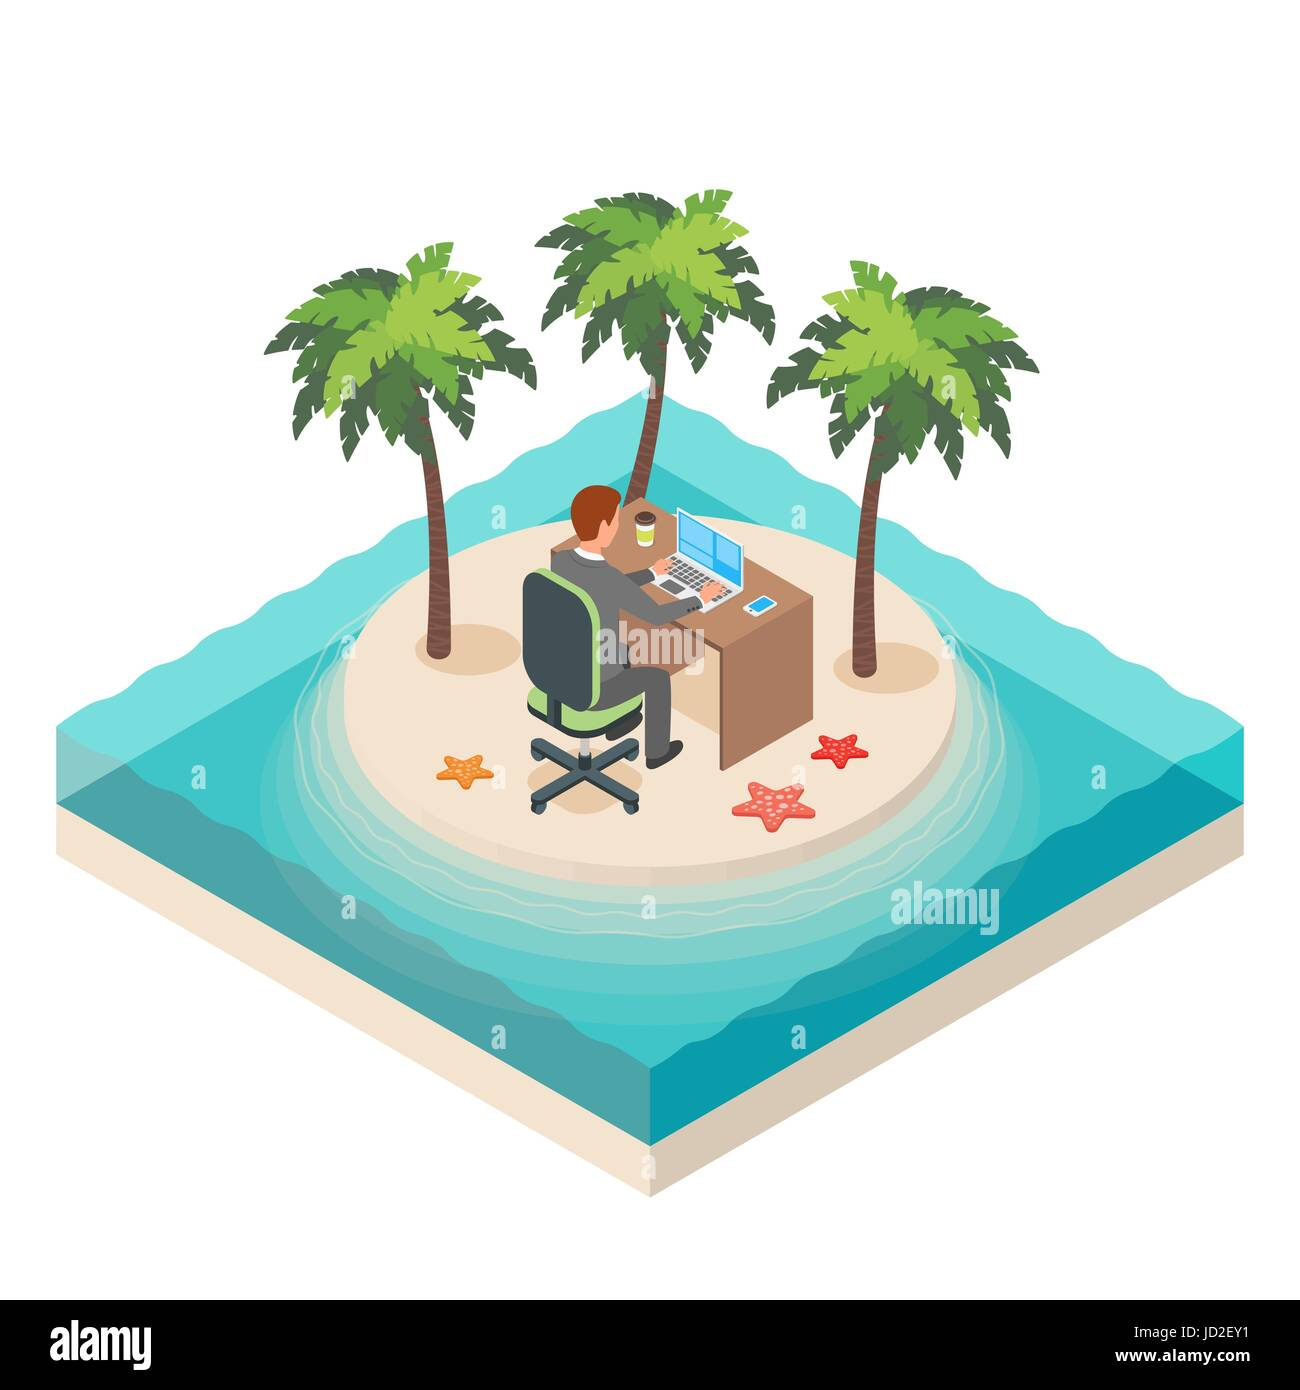 Vector isometric illustration of downshifting lifestyle. Tropical island. Business, man, job, freedom. - Stock Vector